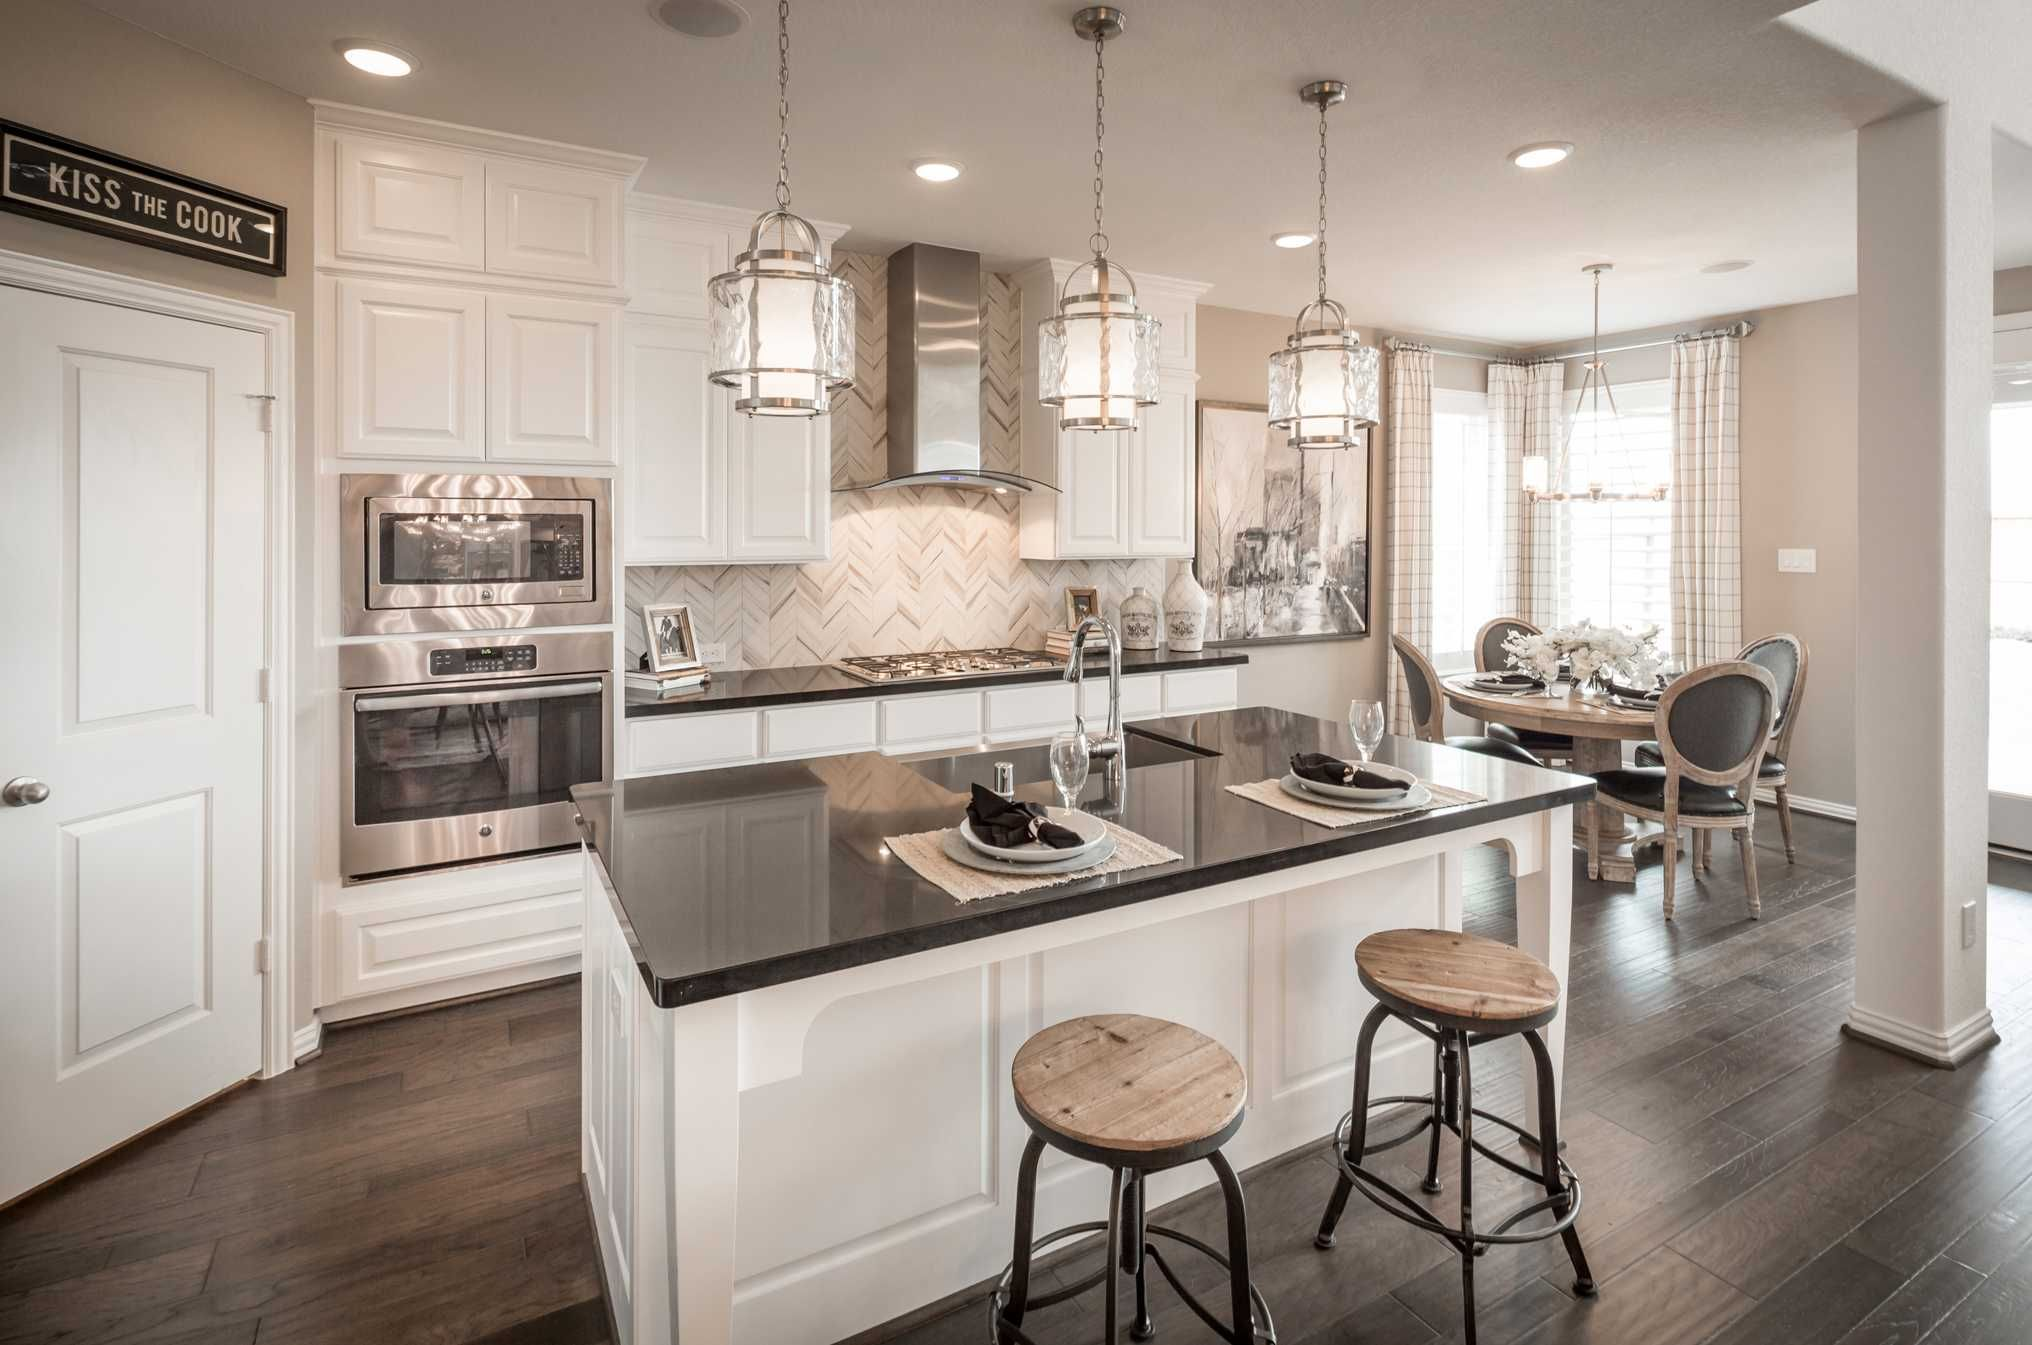 Kitchen Design Houston Beauteous Highland Homes Plan 559H Model Home In Houston Texas Cross Creek Design Decoration